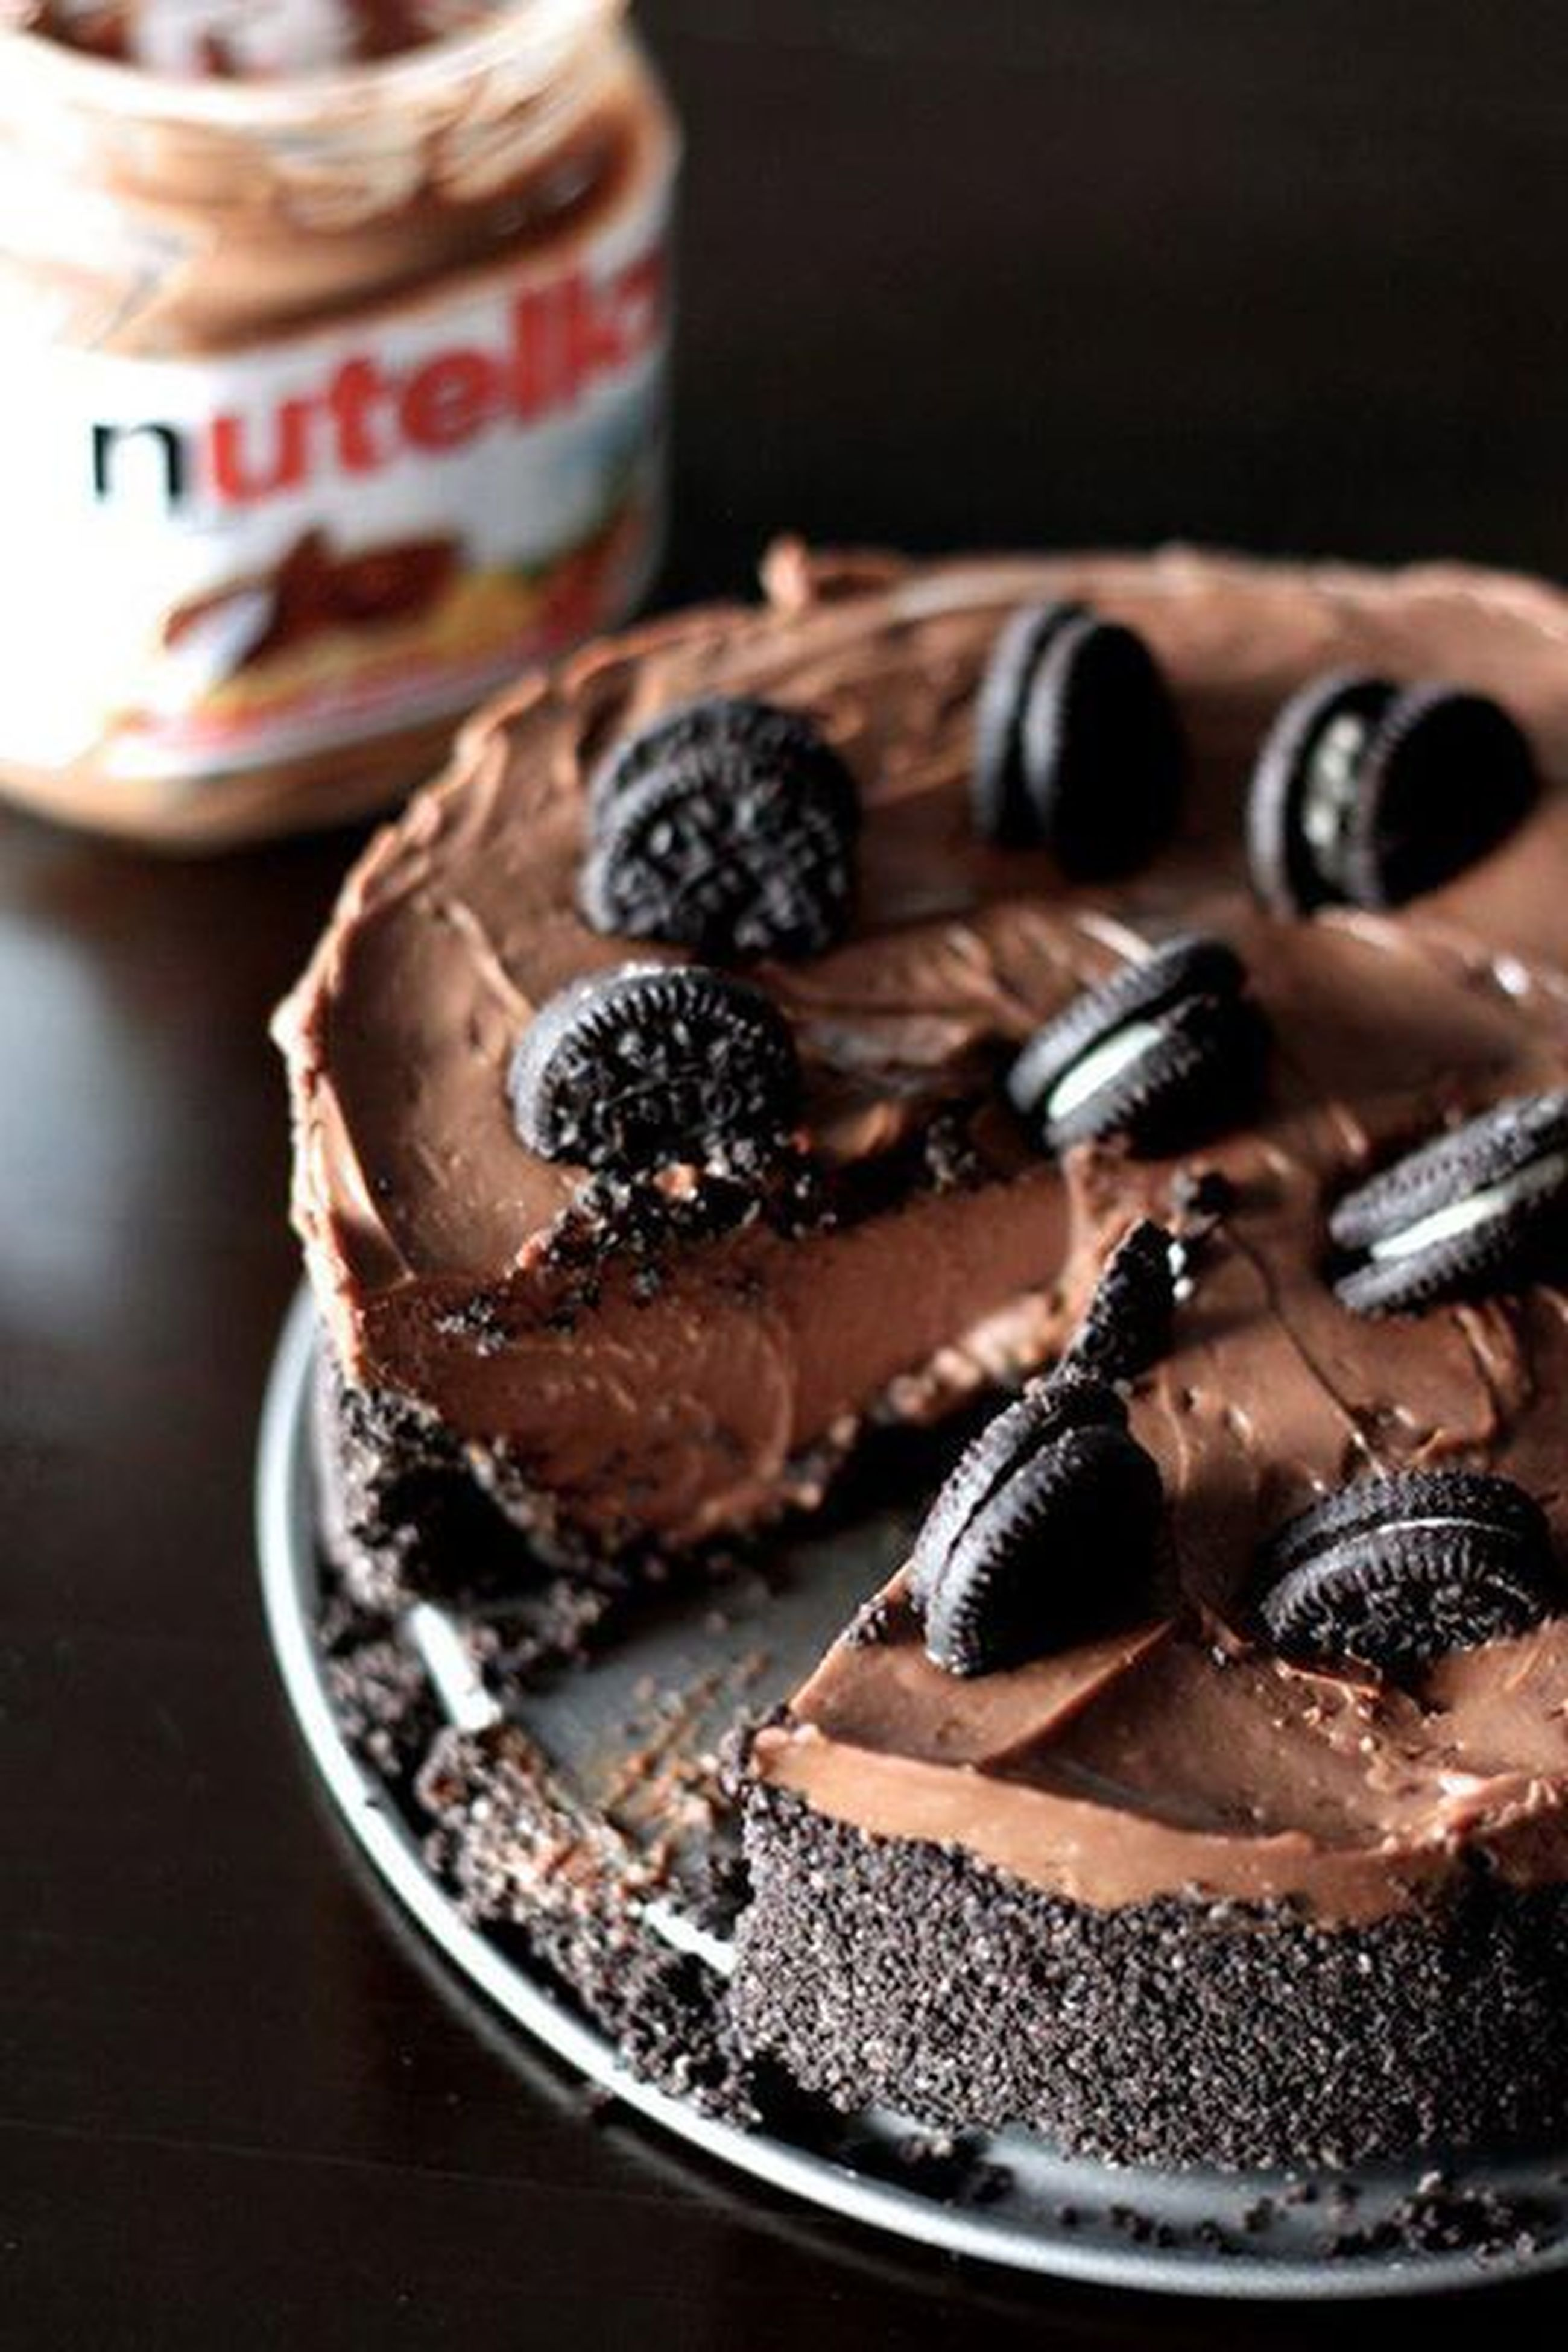 food and drink, food, indoors, sweet food, freshness, dessert, indulgence, still life, ready-to-eat, unhealthy eating, cake, chocolate, close-up, table, temptation, fruit, blueberry, plate, serving size, high angle view